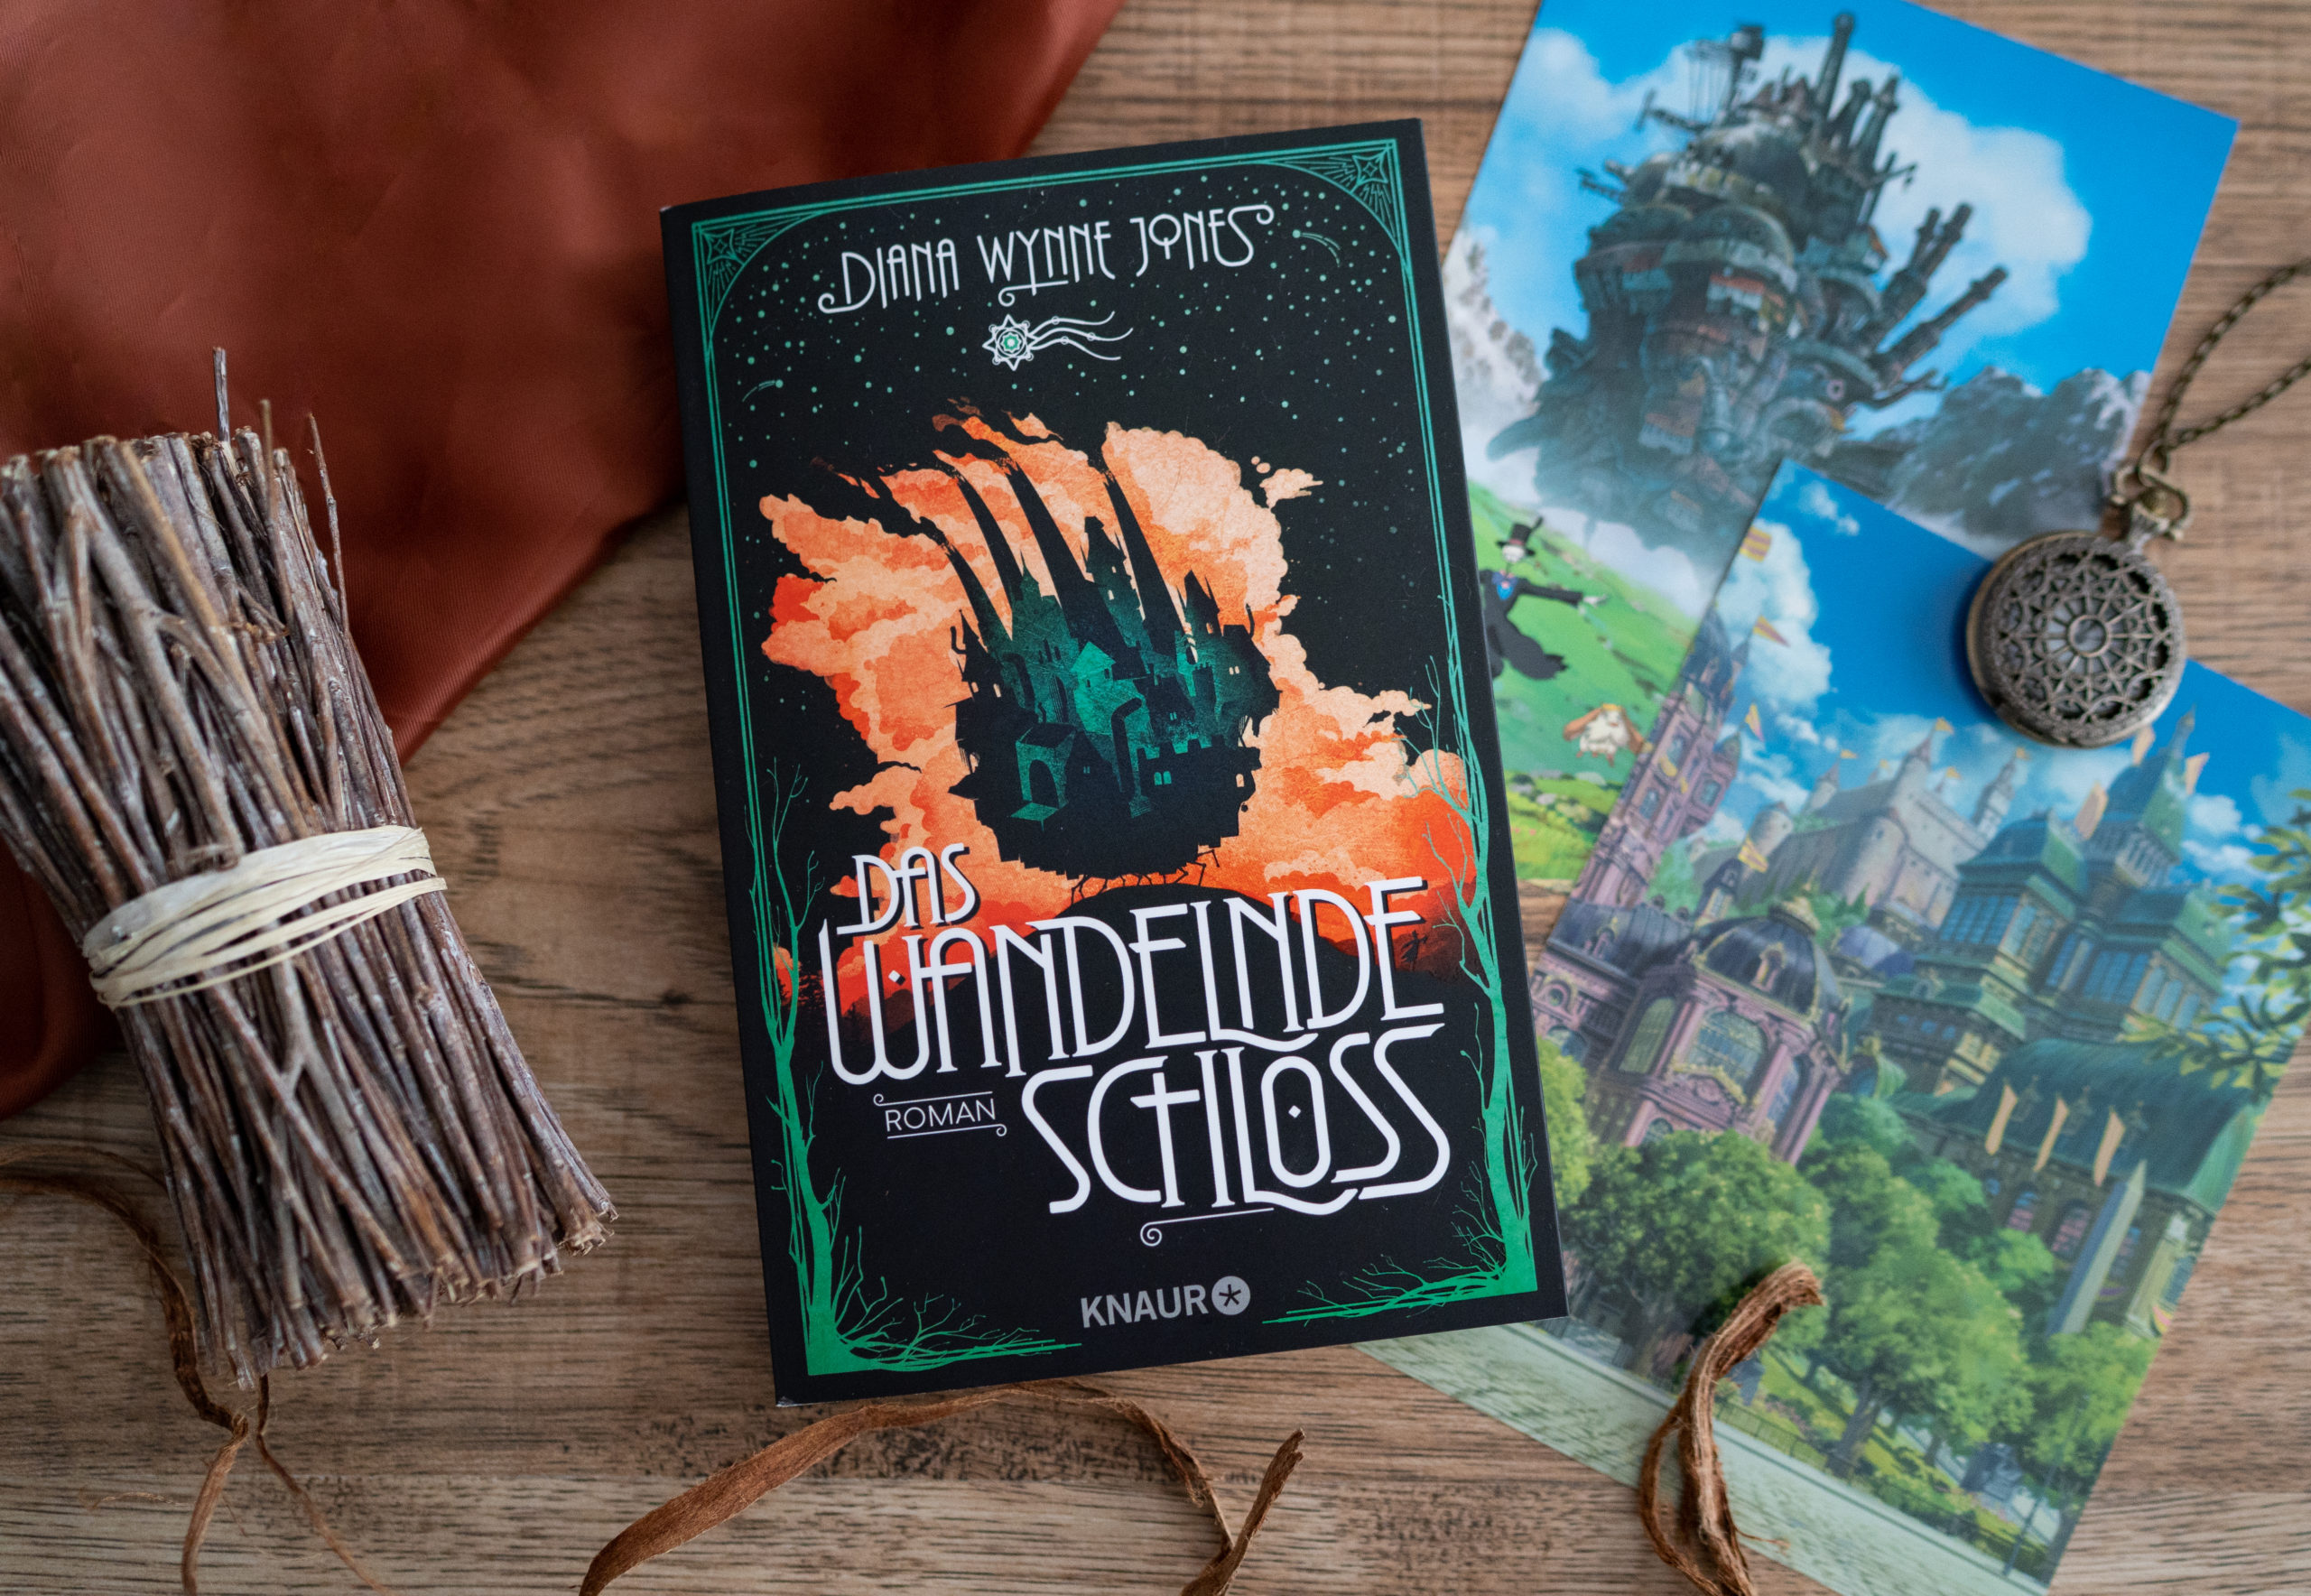 Das wandelnde Schloss – Diana Wynne Jones graphic